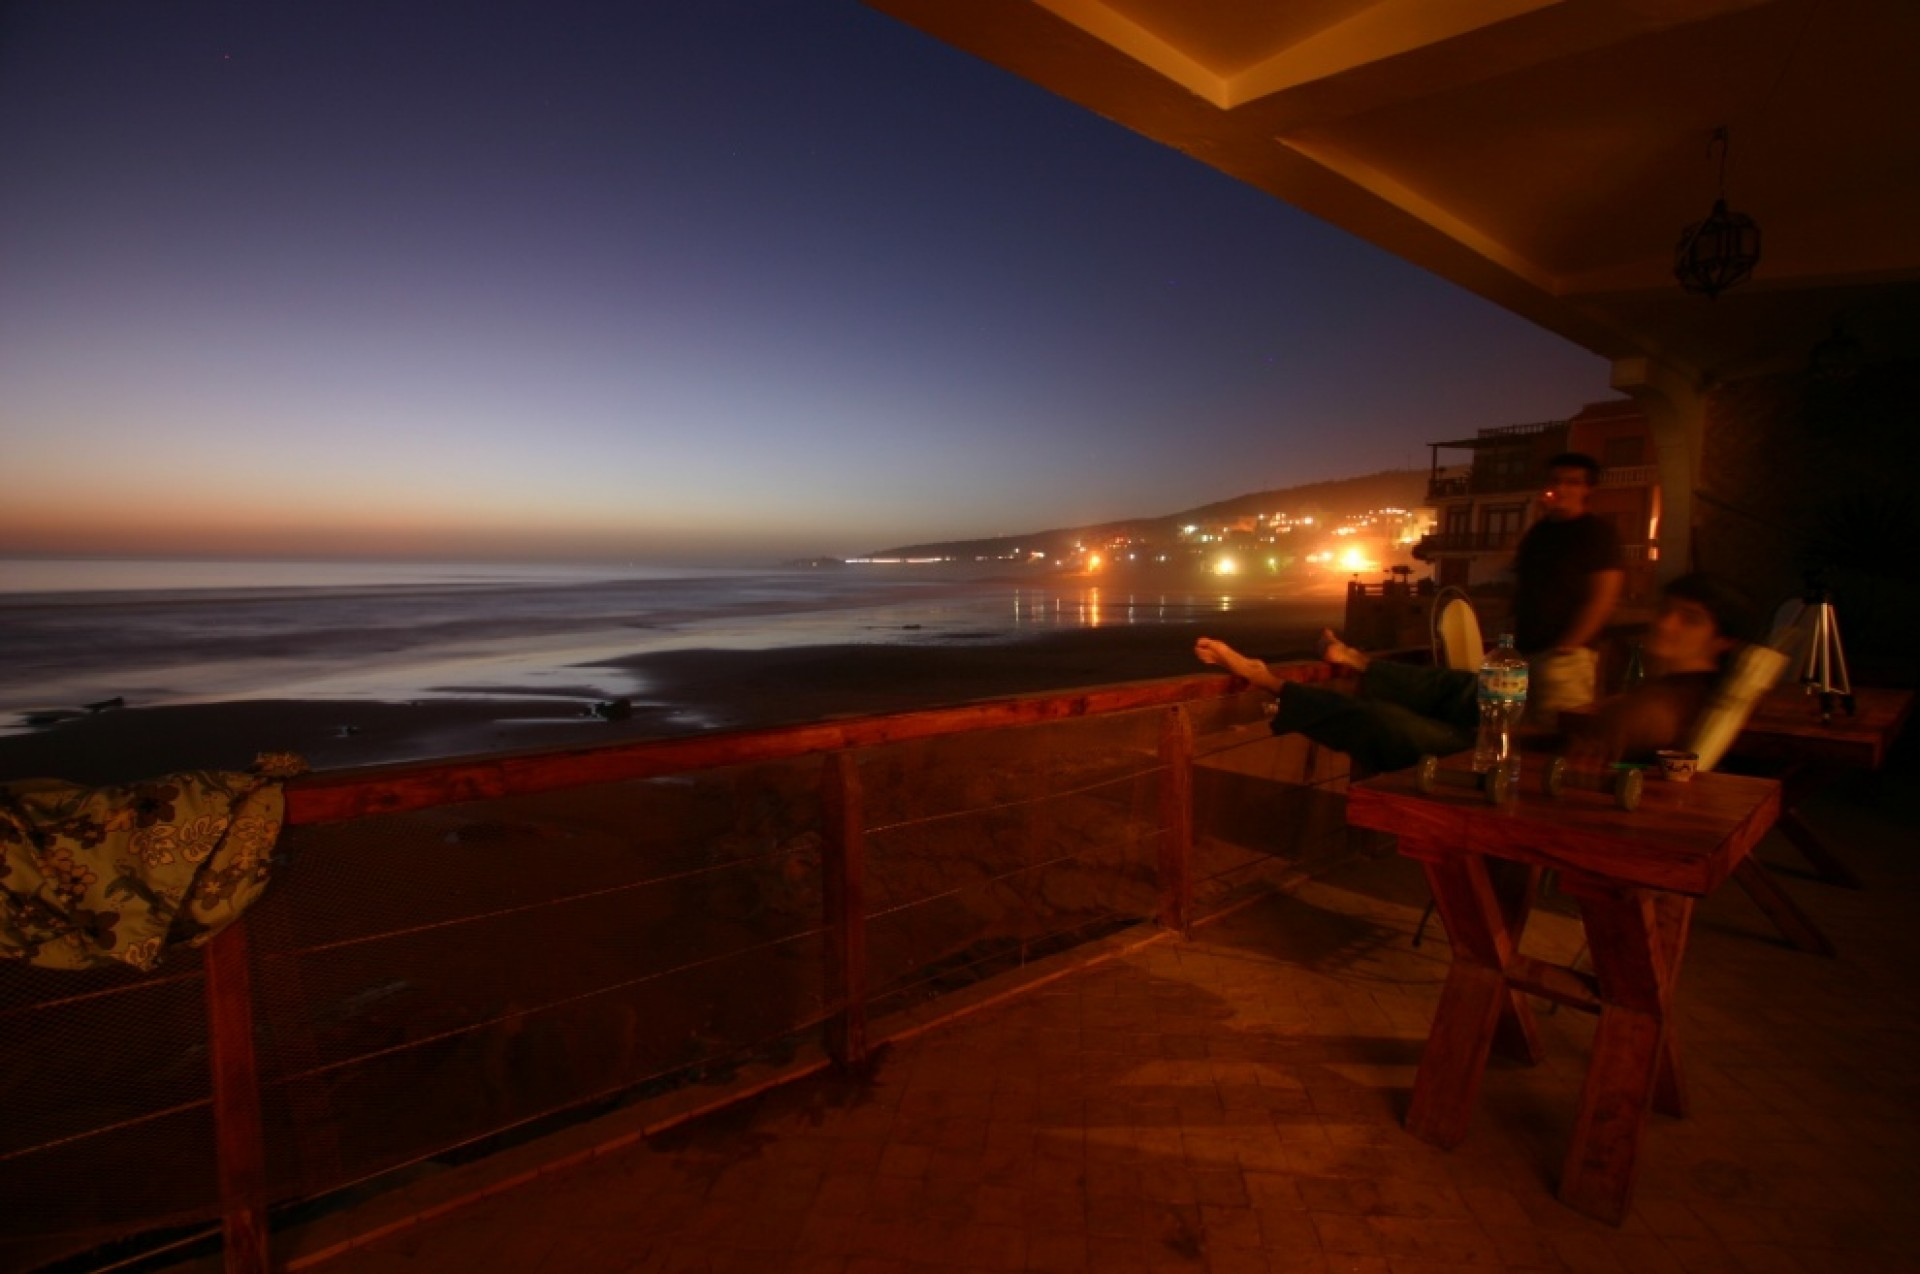 andyroy's photo of Taghazout